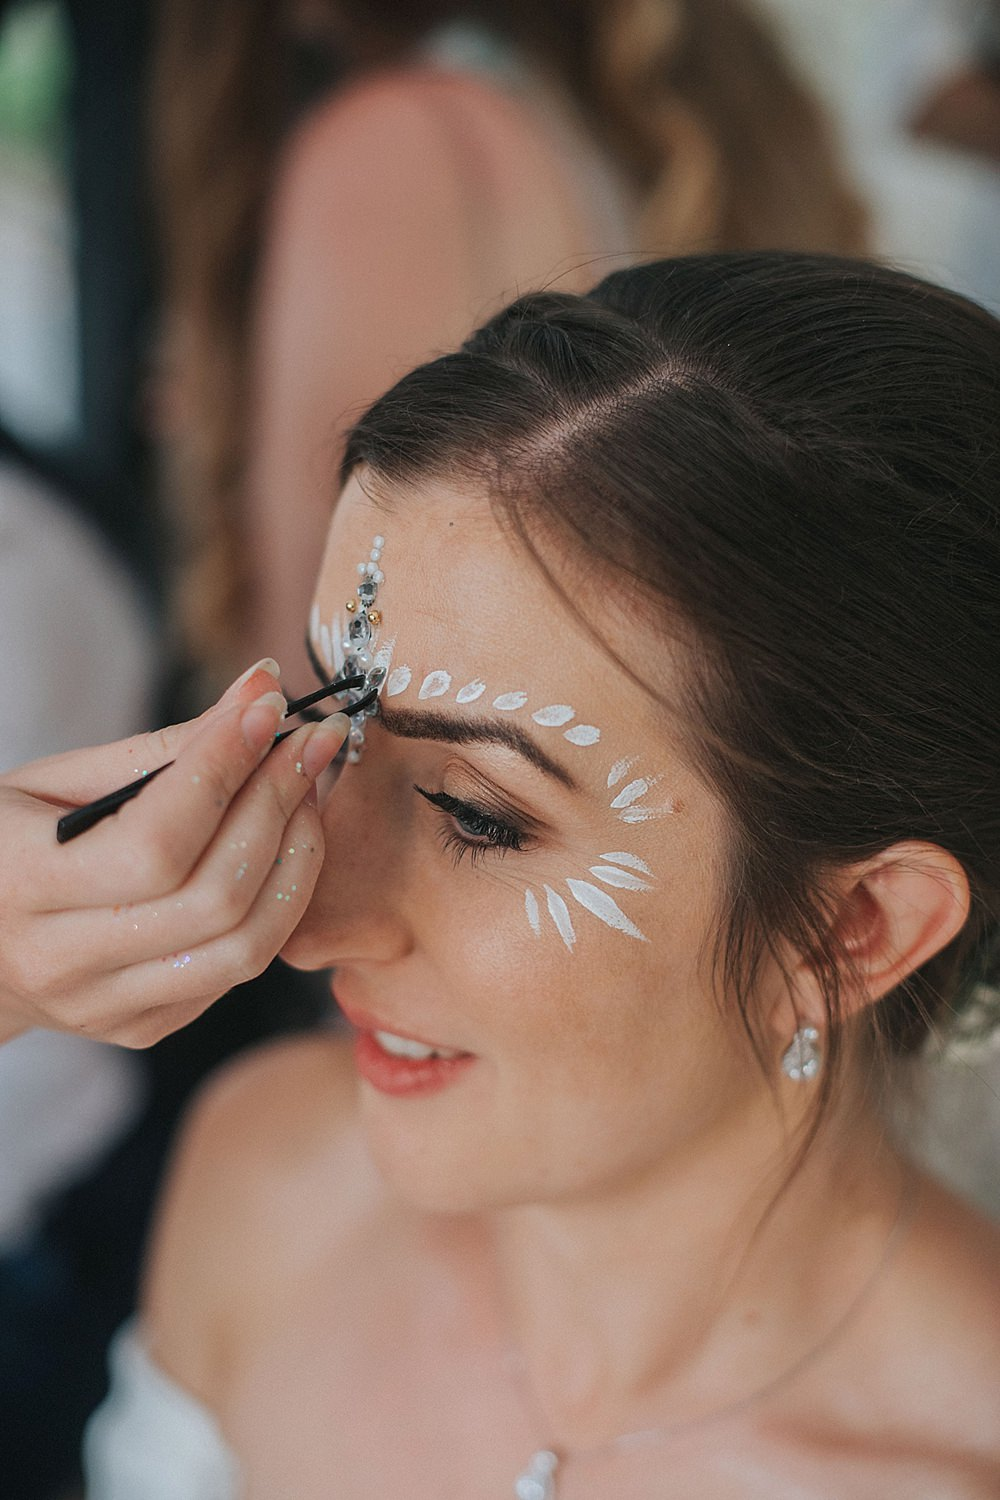 Glitter Make Up Bride Bridal Houchins Farm Wedding Julia and You Photography